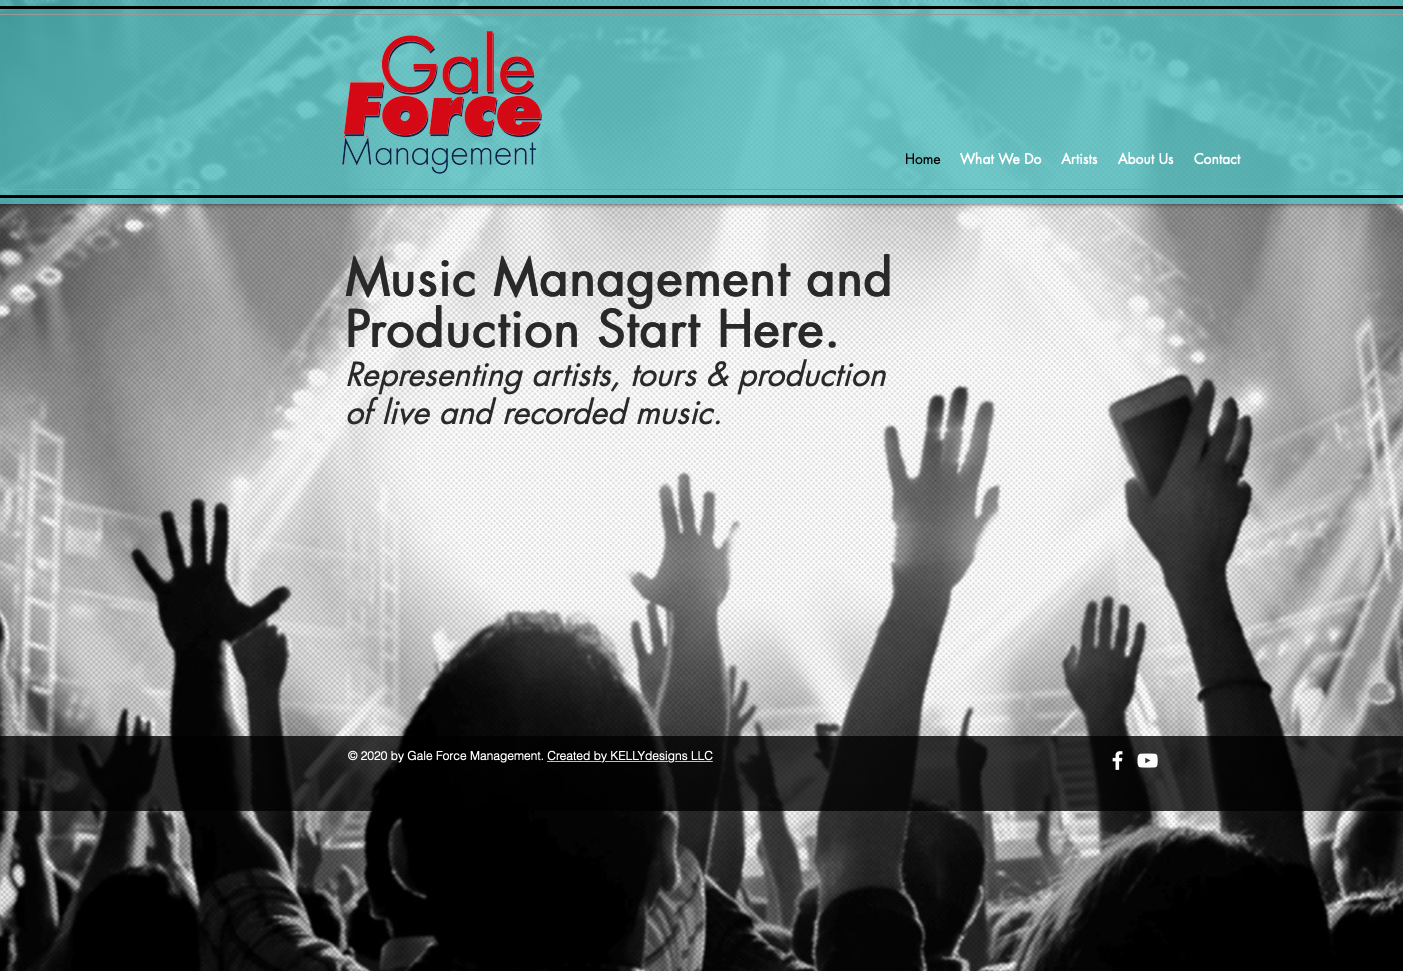 Gale Force Management